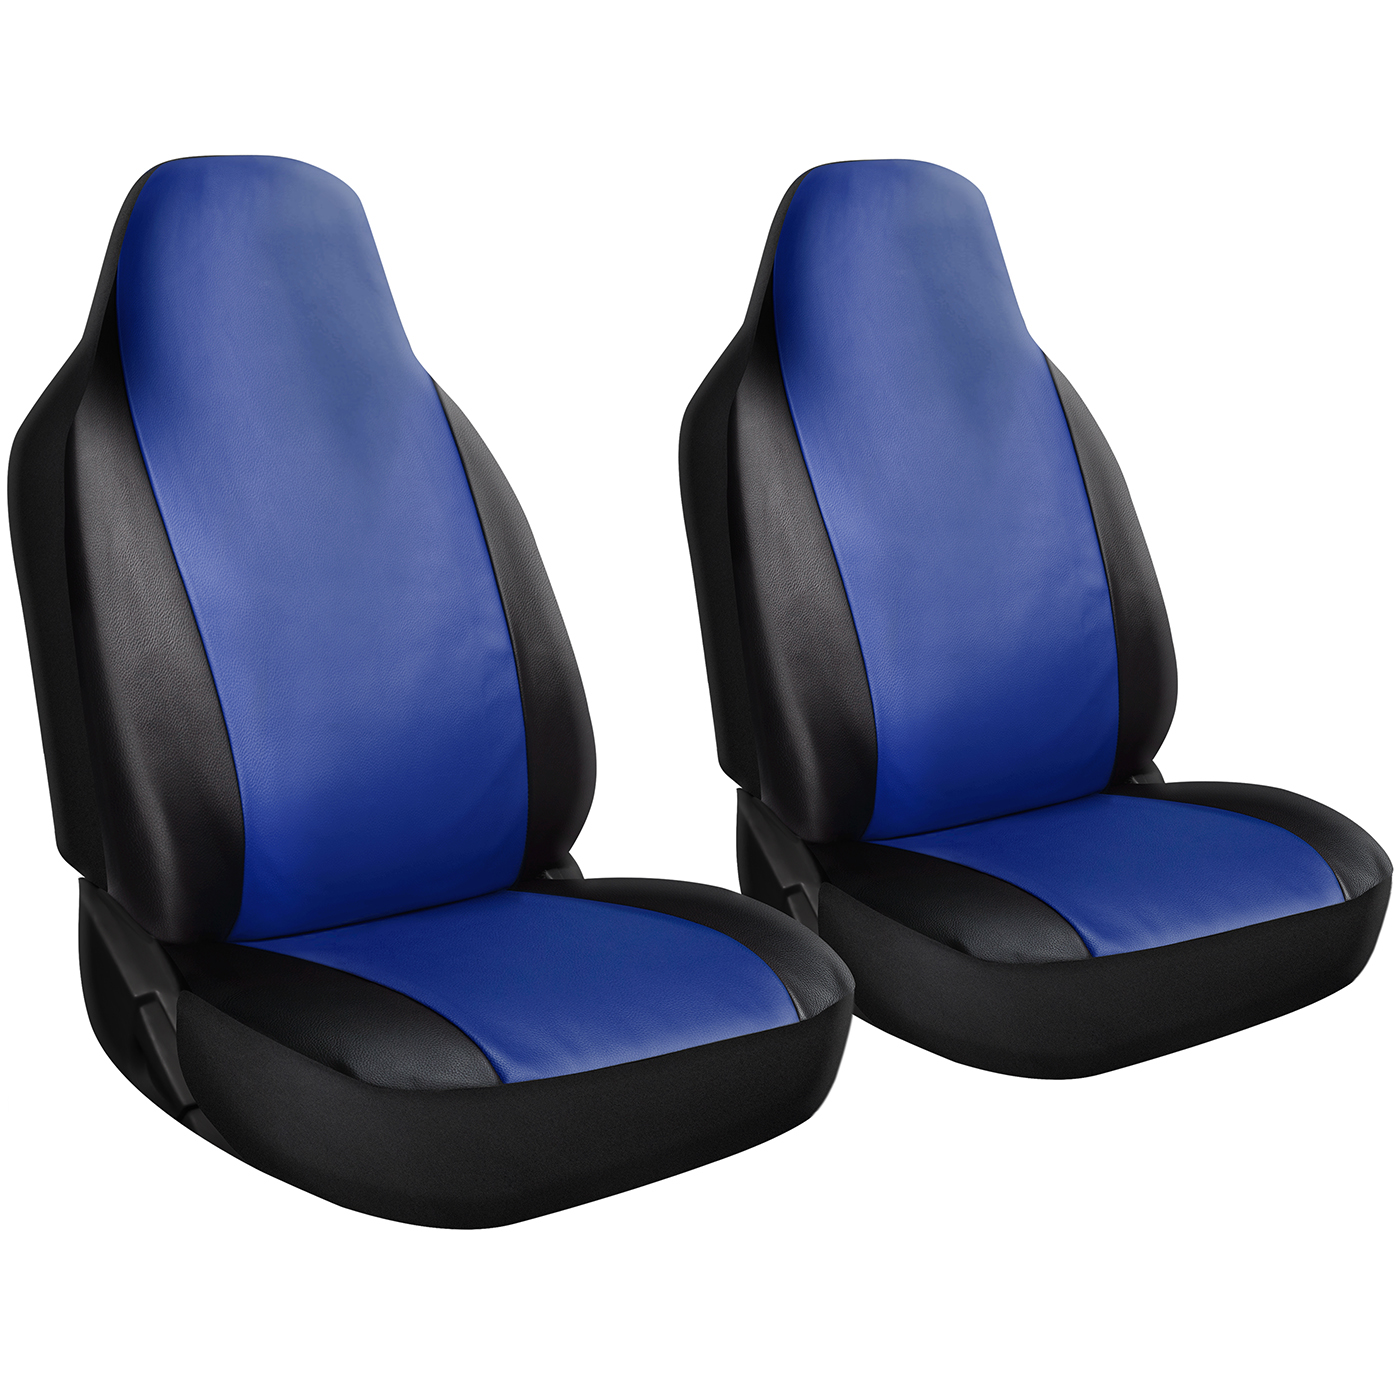 Low Back PU Leather 2 Pc Seat Covers for Front and Back Passenger Seats